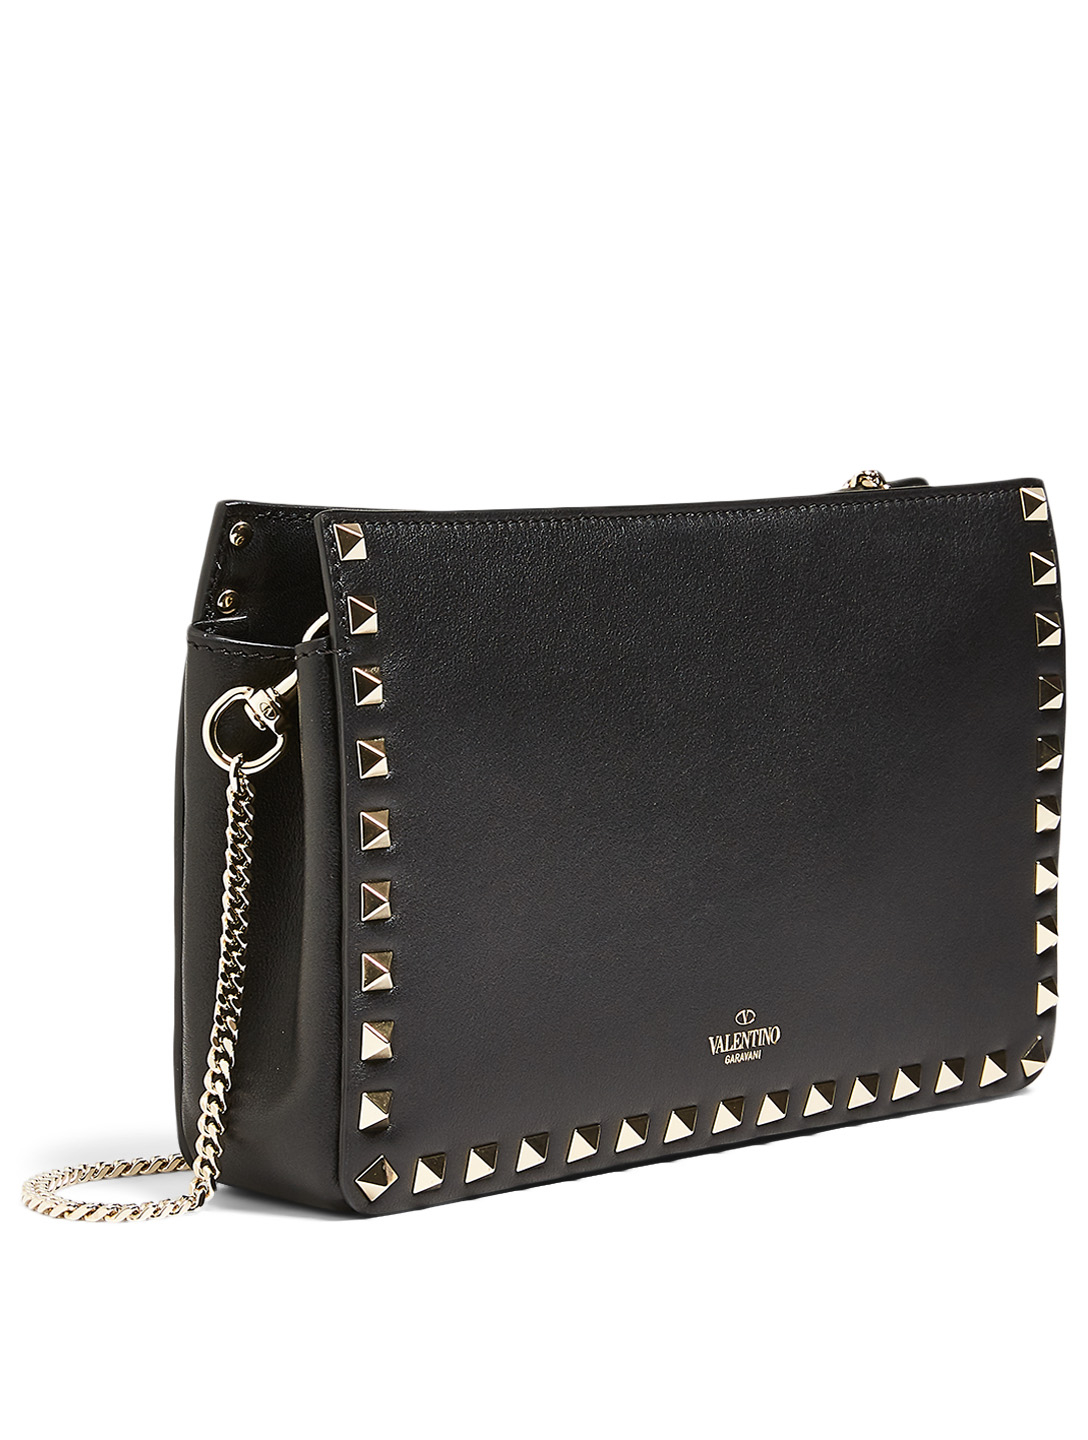 VALENTINO GARAVANI Rockstud Leather Chain Clutch Bag Women's Black